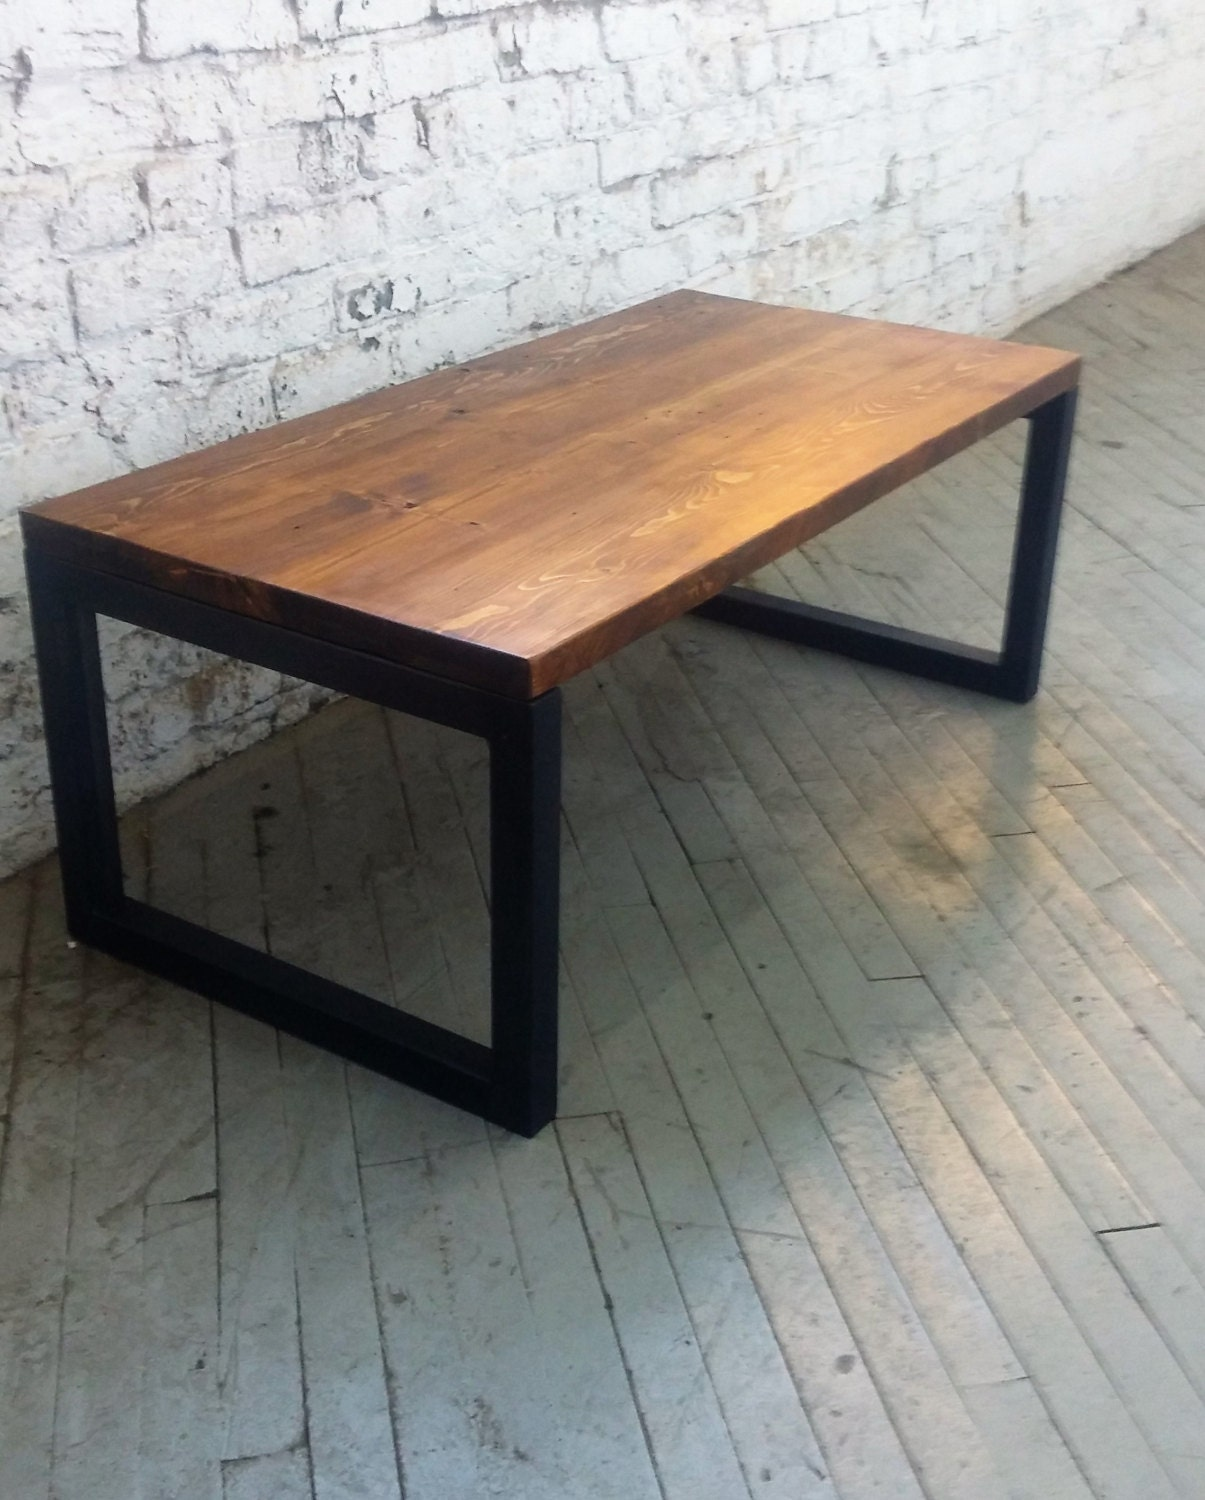 Reclaimed Wood And Metal Coffee Table: Reclaimed Wood And Steel Coffee Table Lentini Design